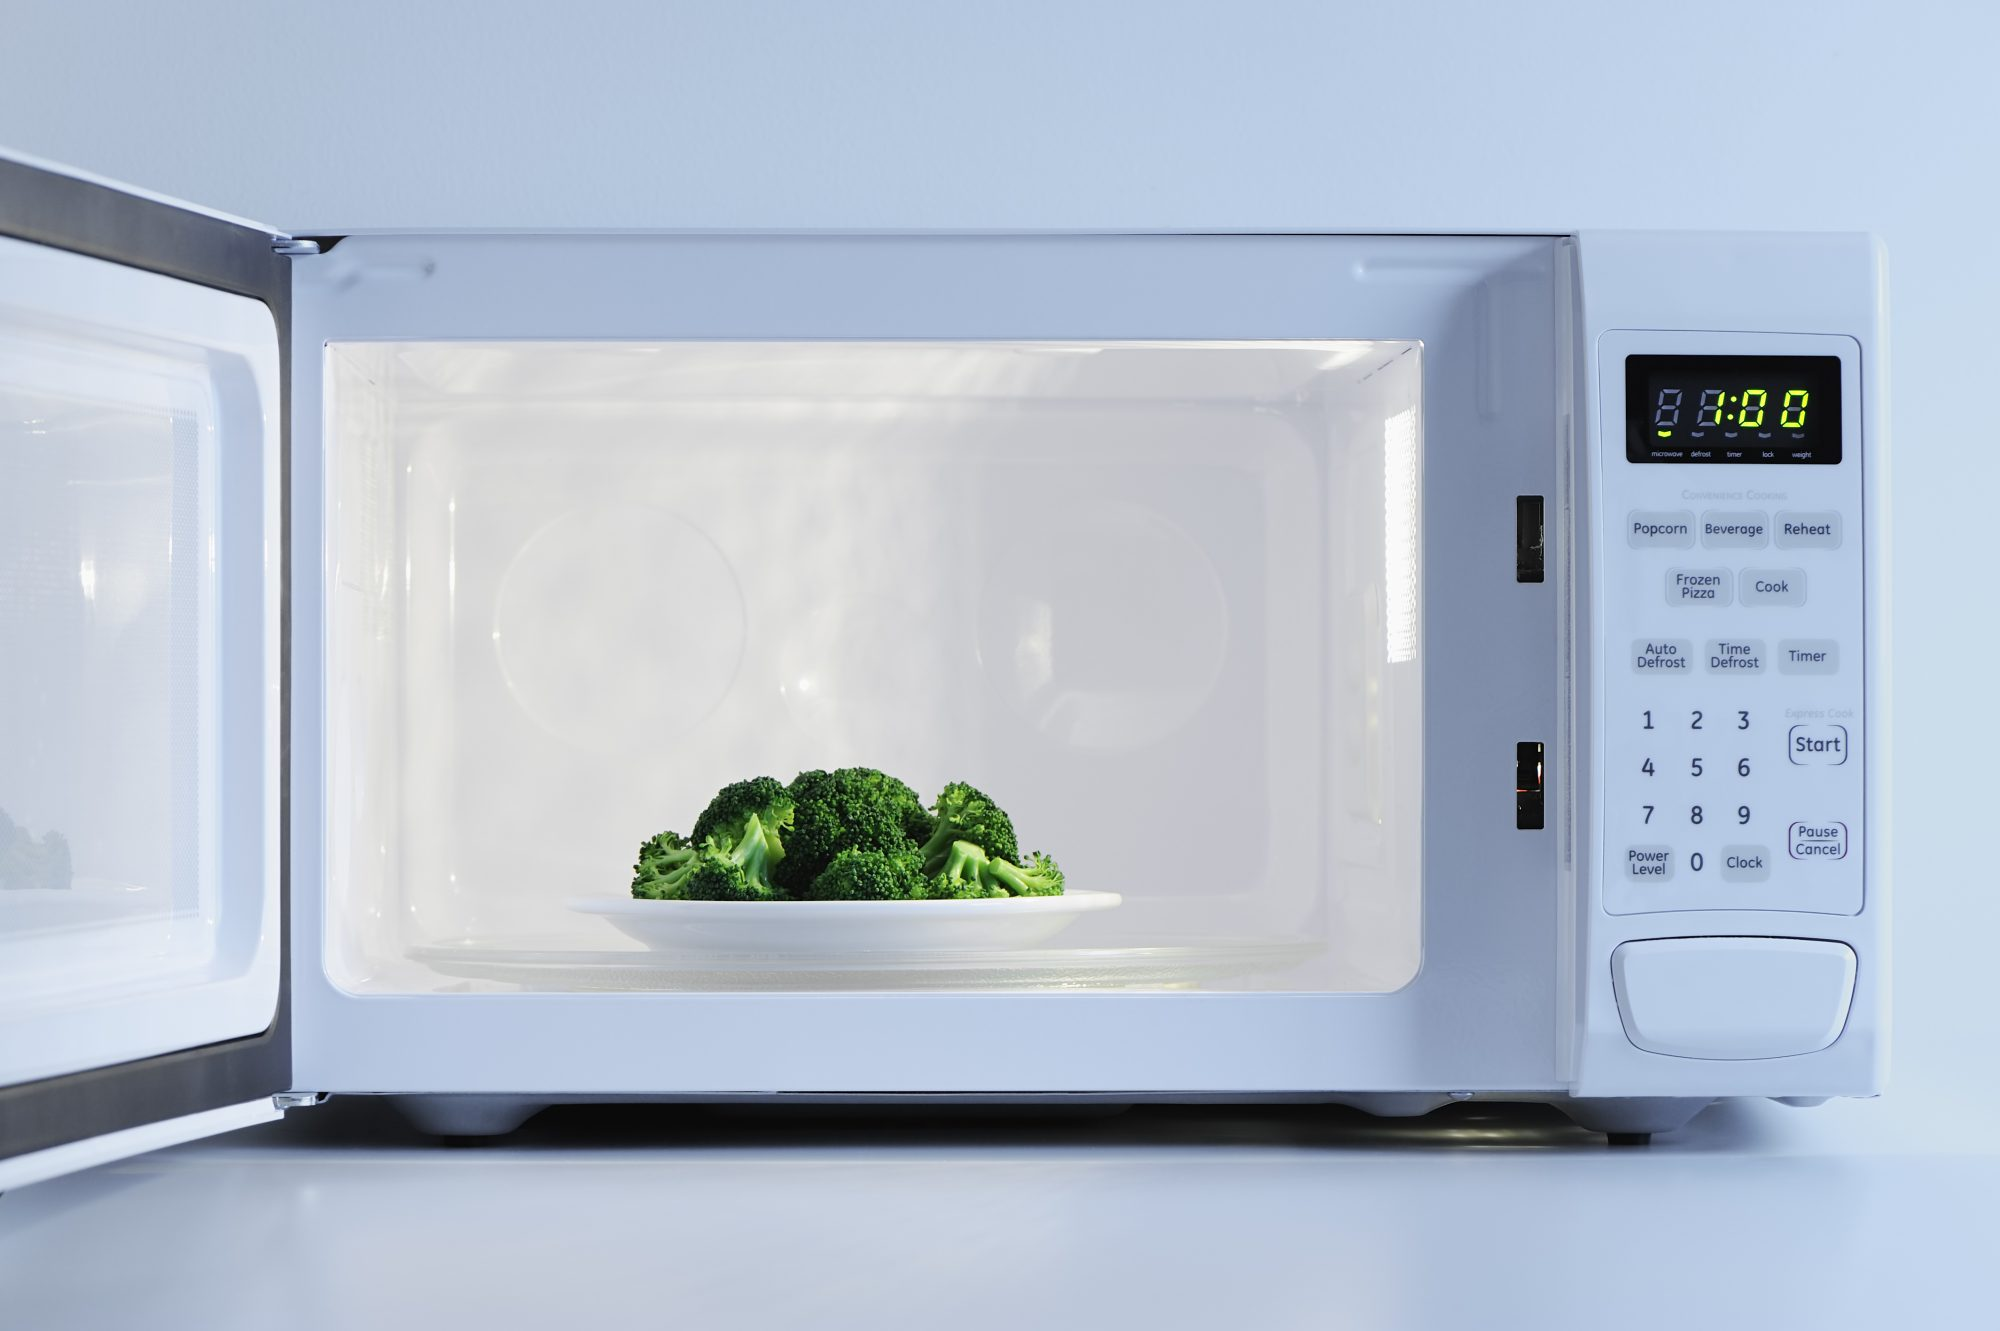 022520_Getty Broccoli in the Microwave